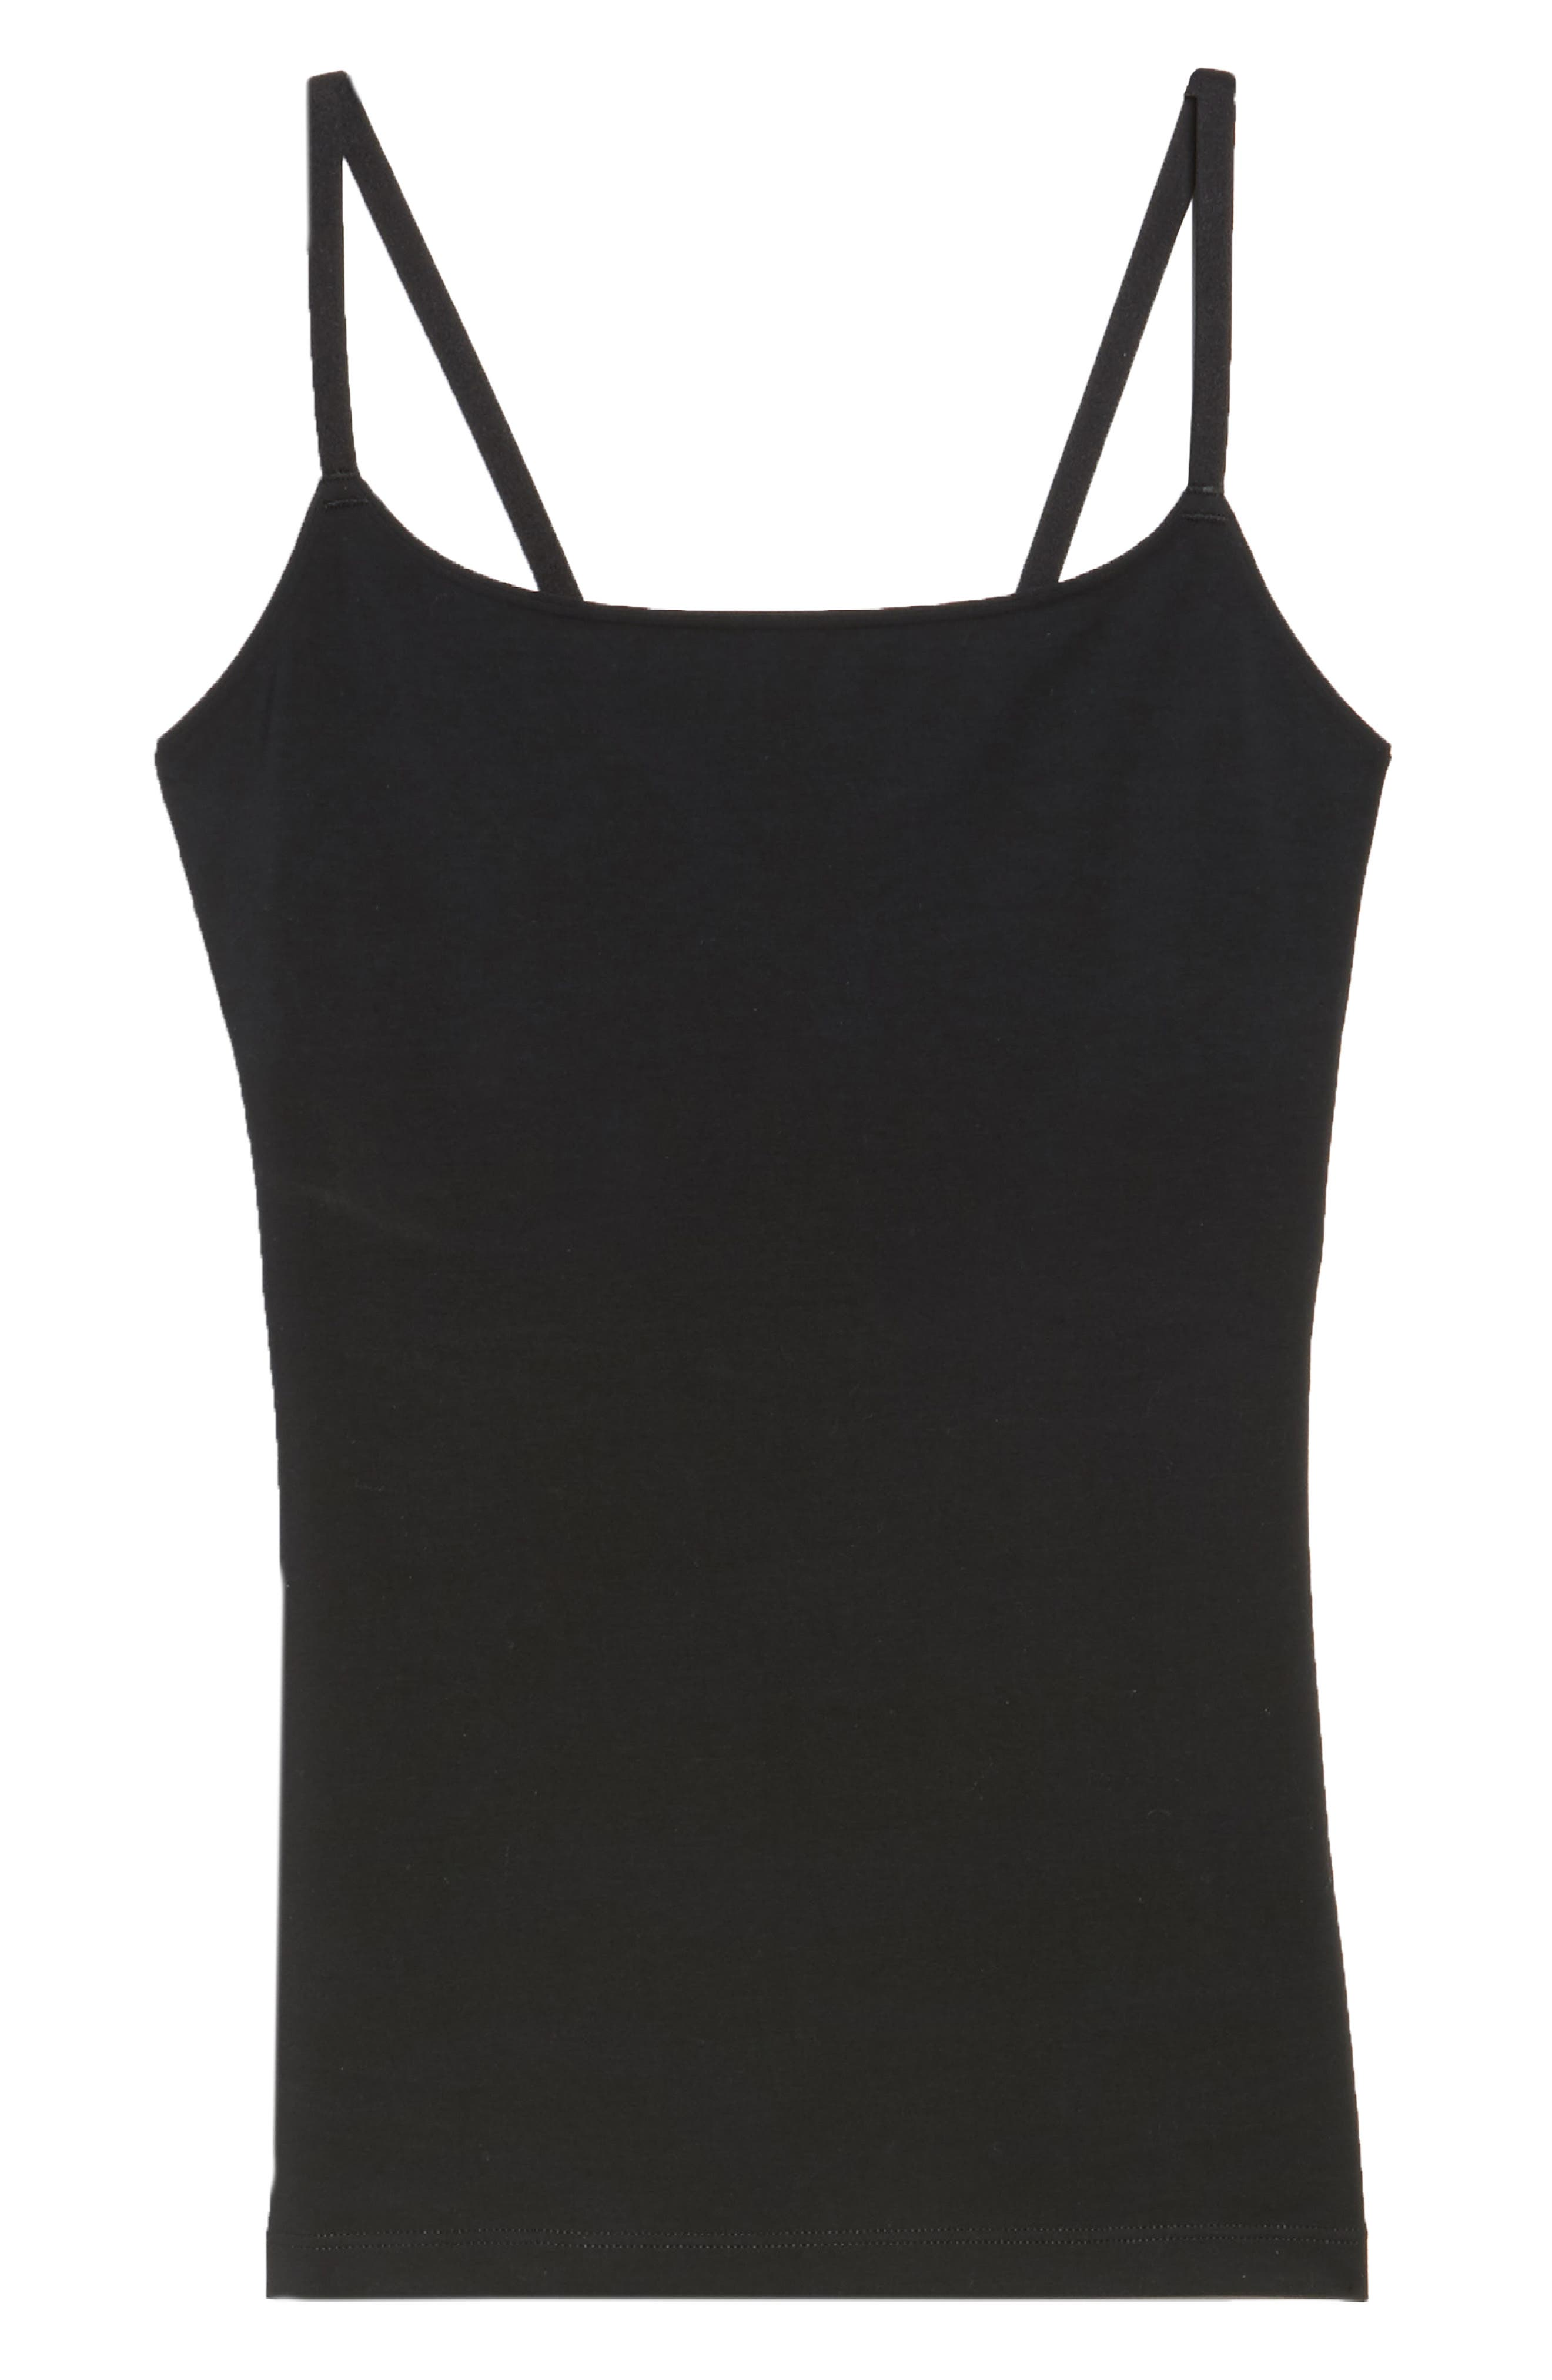 In & Out Camisole,                             Alternate thumbnail 6, color,                             VERY BLACK